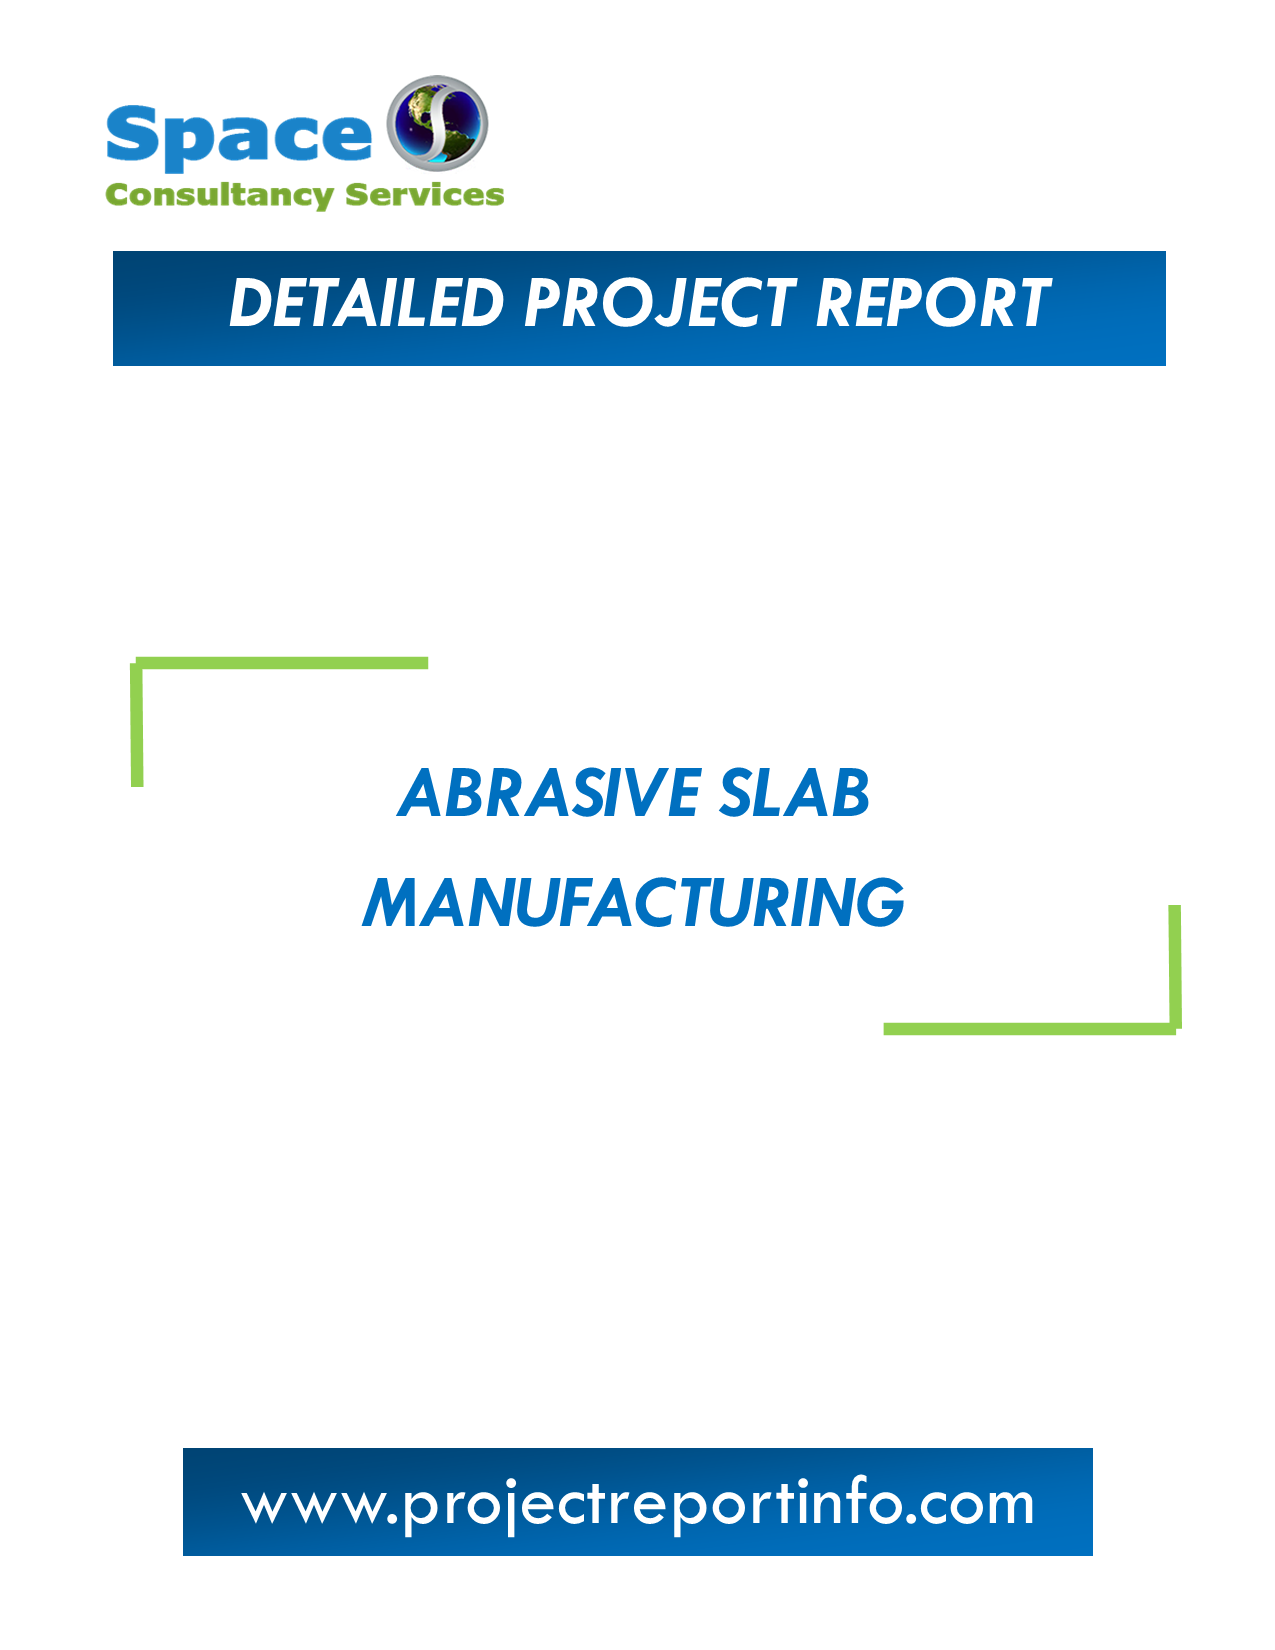 Project Report on Abrasive Slab Manufacturing